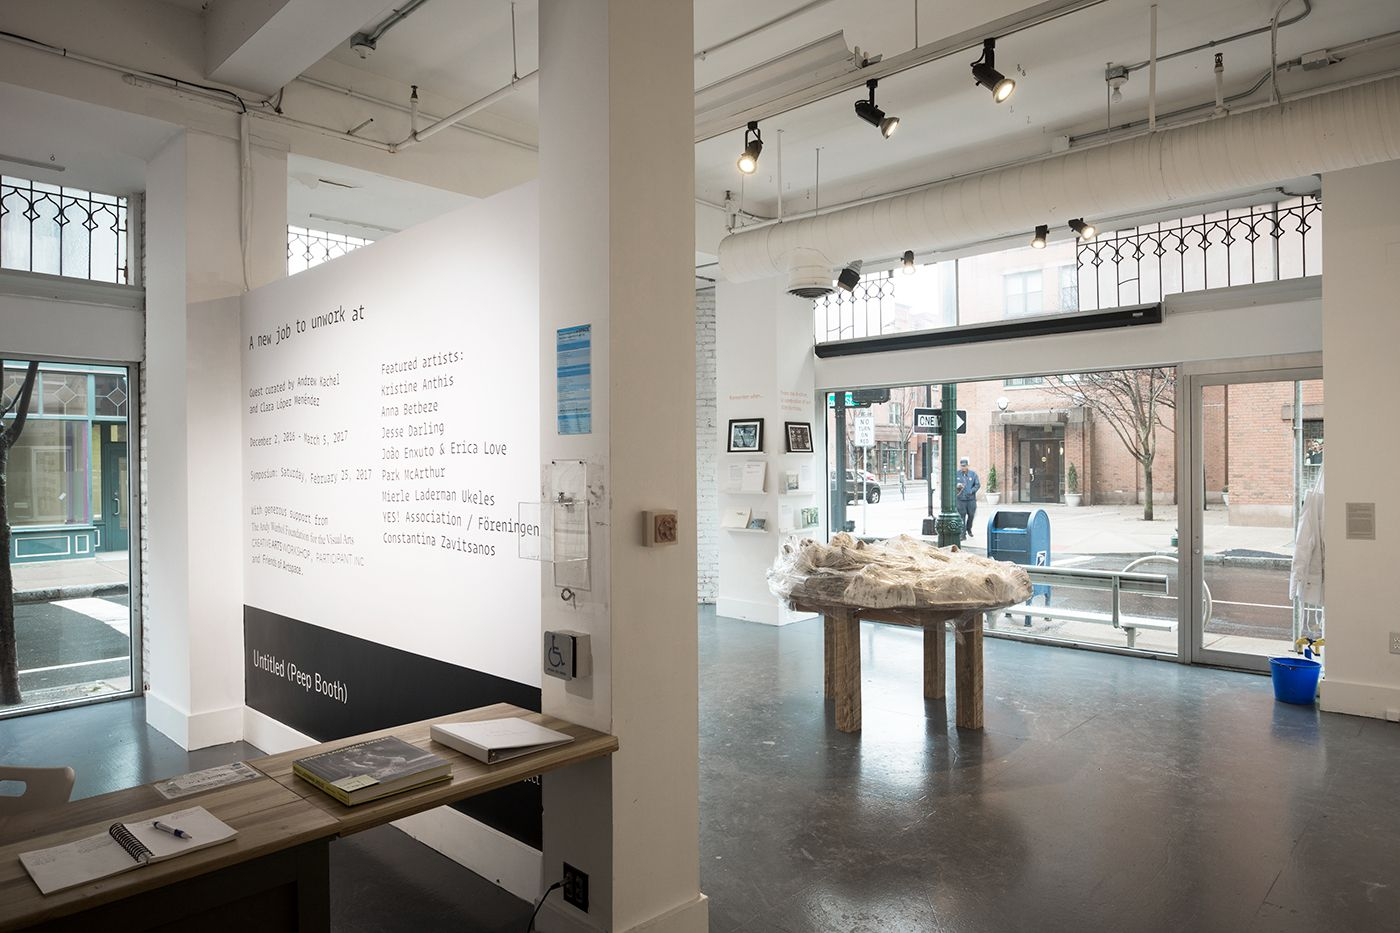 Artspace interior, showing an architectural sculpture on a table and the gallery wall.